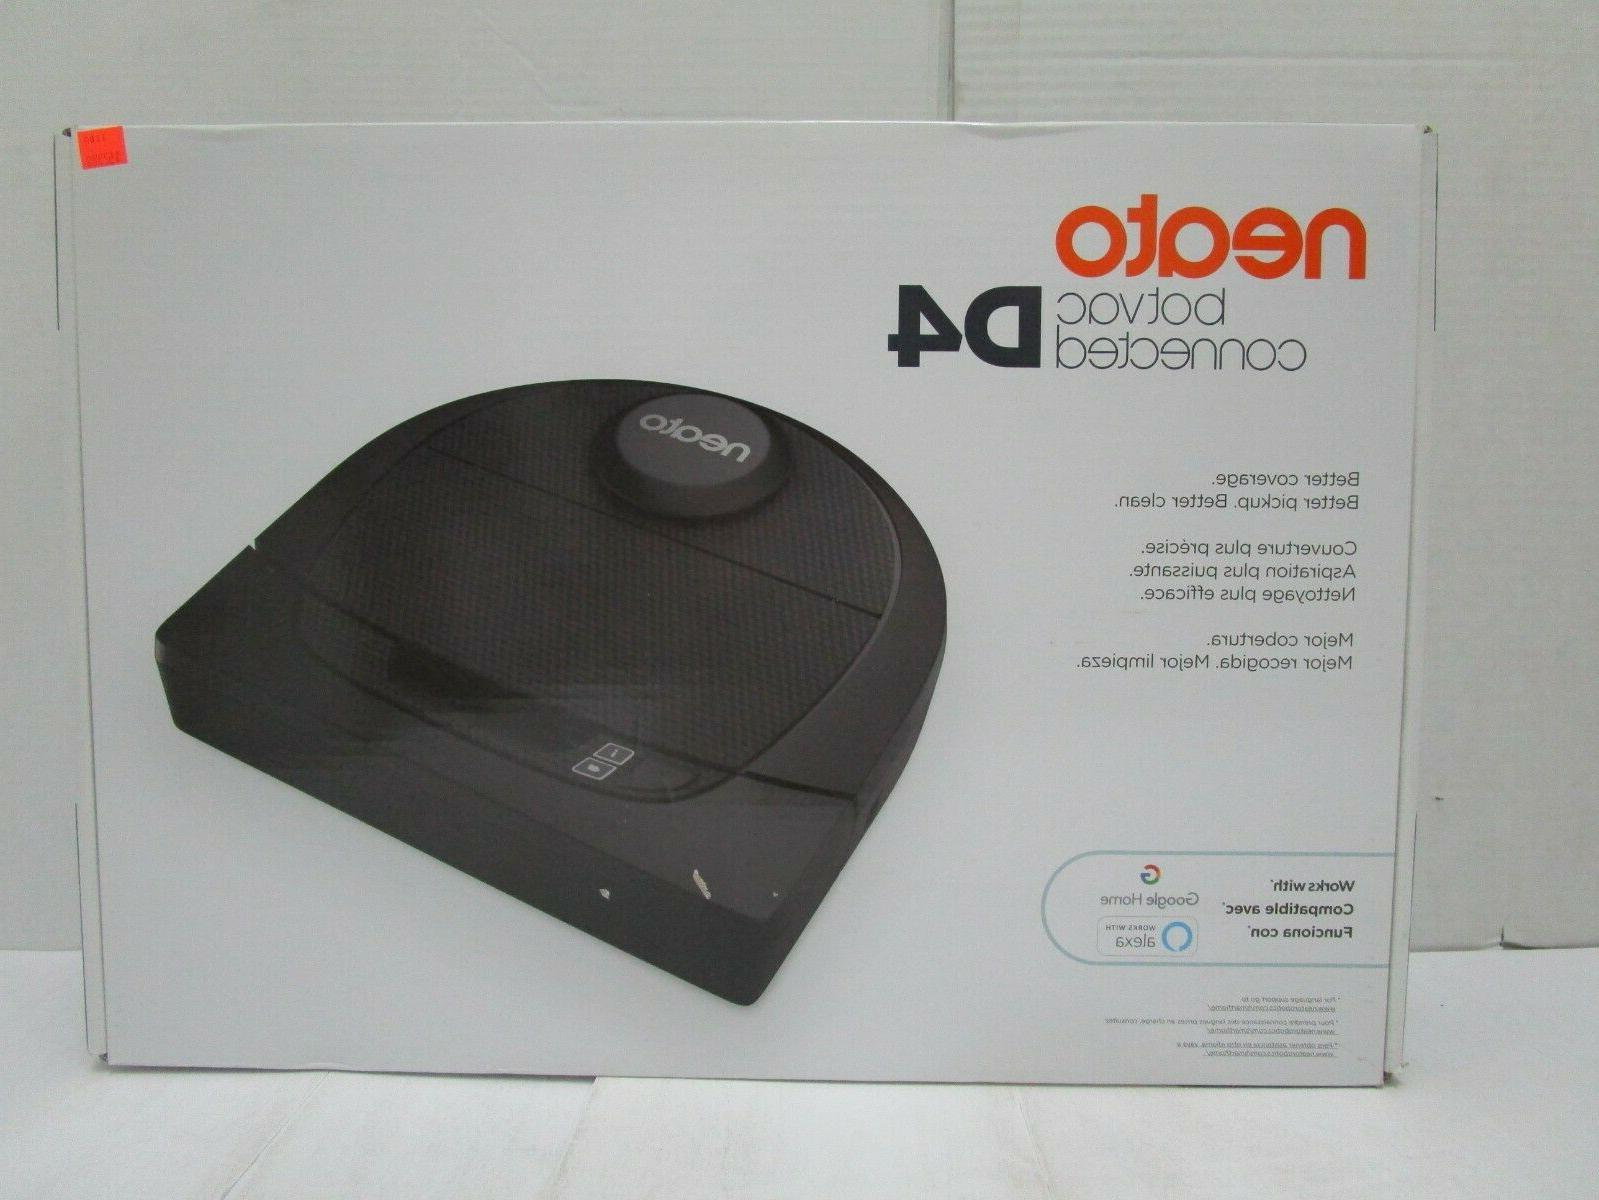 brand new botvac connected d4 robotic vacuum